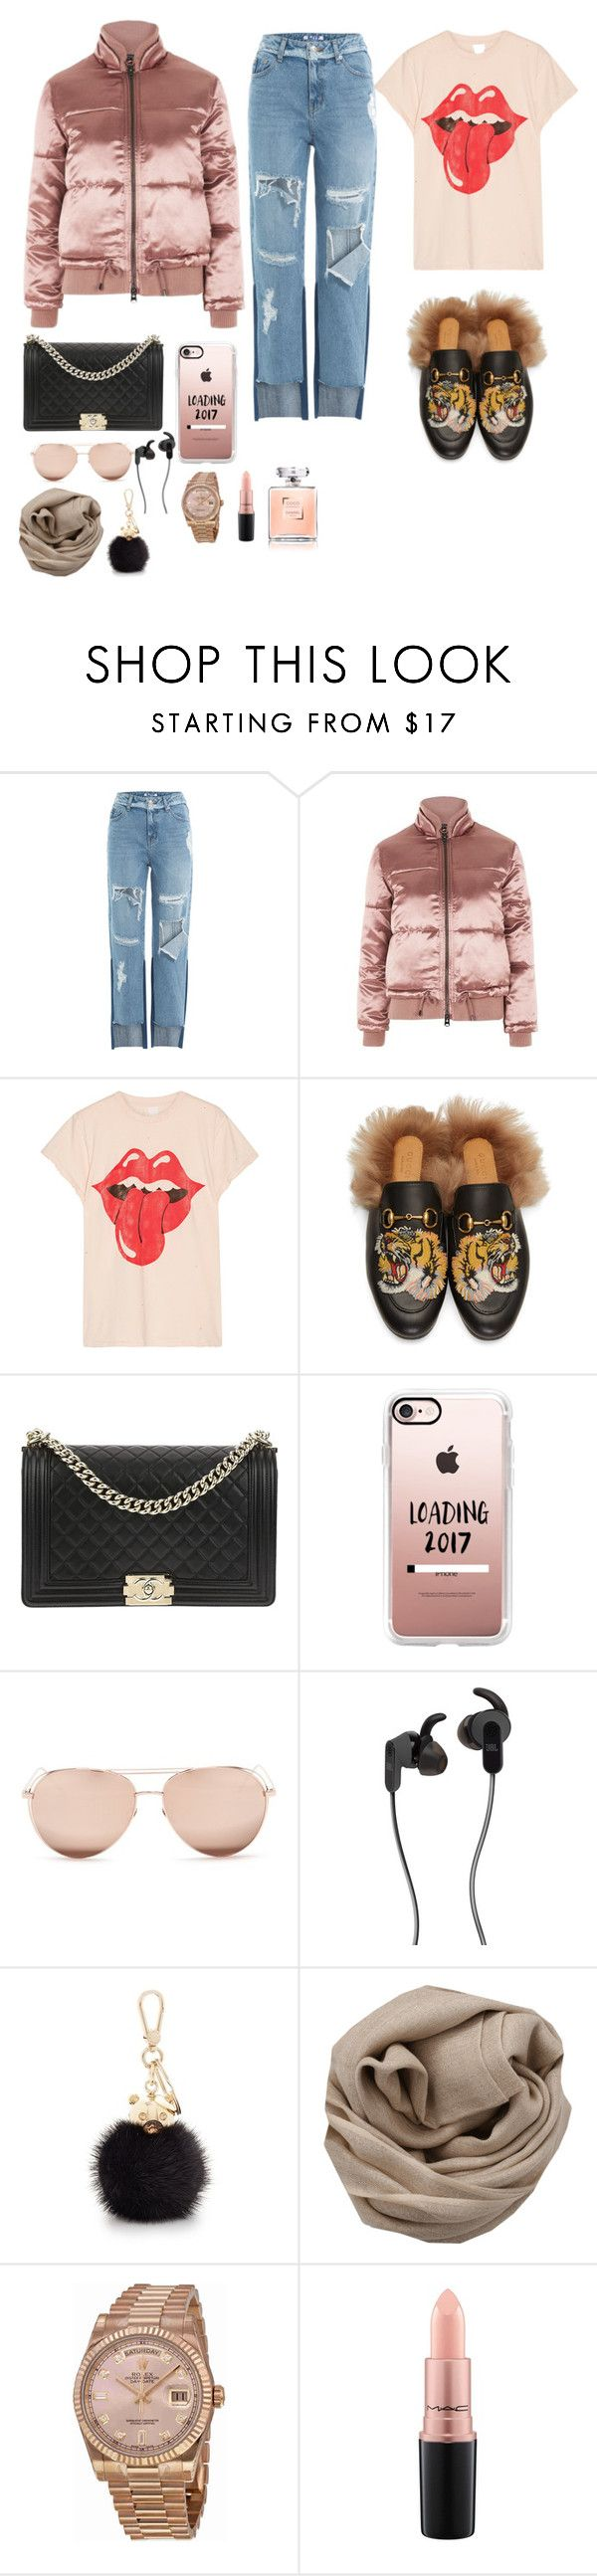 """#i really love ! 💙💙💙"" by joe-khulan on Polyvore featuring SJYP, Topshop, MadeWorn, Gucci, Chanel, Casetify, Linda Farrow, JBL, Furla and Brunello Cucinelli"